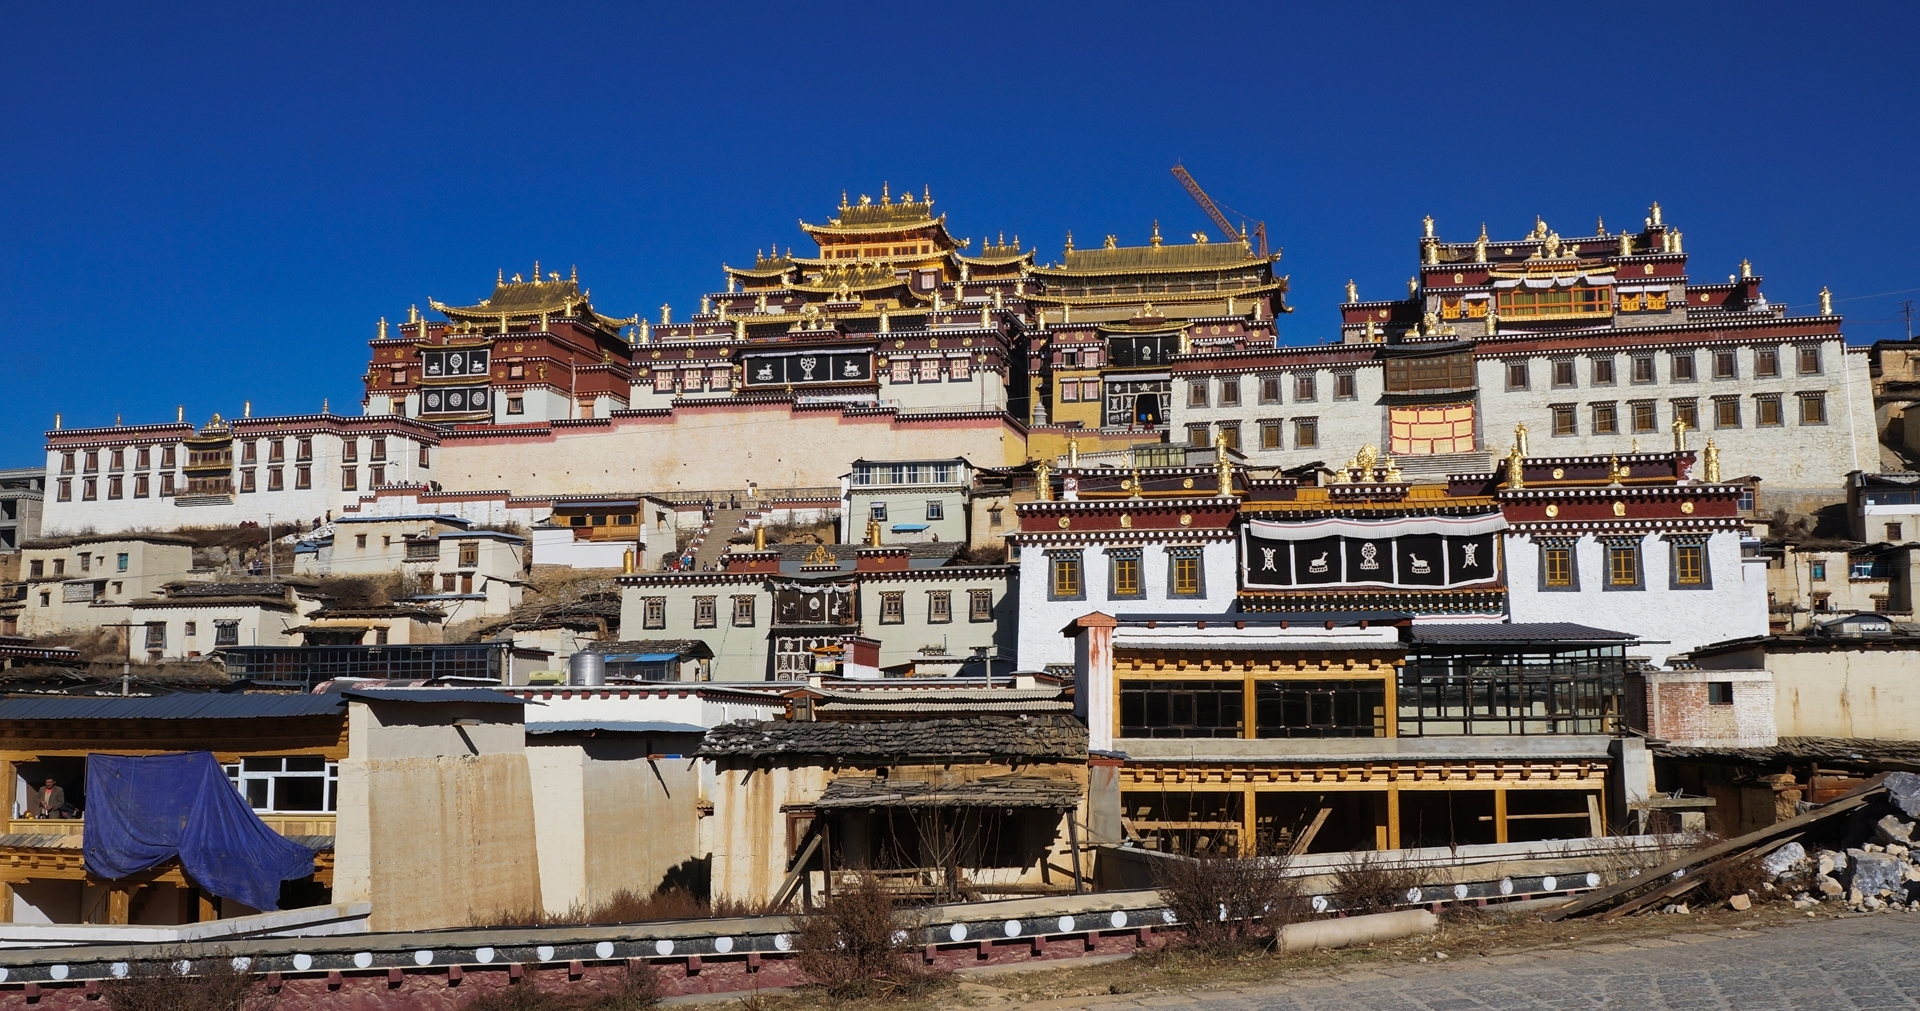 Ganden-Sumtsenling-Monastery-built-in-1679-is-the-largest-Tibetan-Buddhist-monastery-in-Yunnan-Province-China.-TB-1-Place-by-Daisy-King-SC